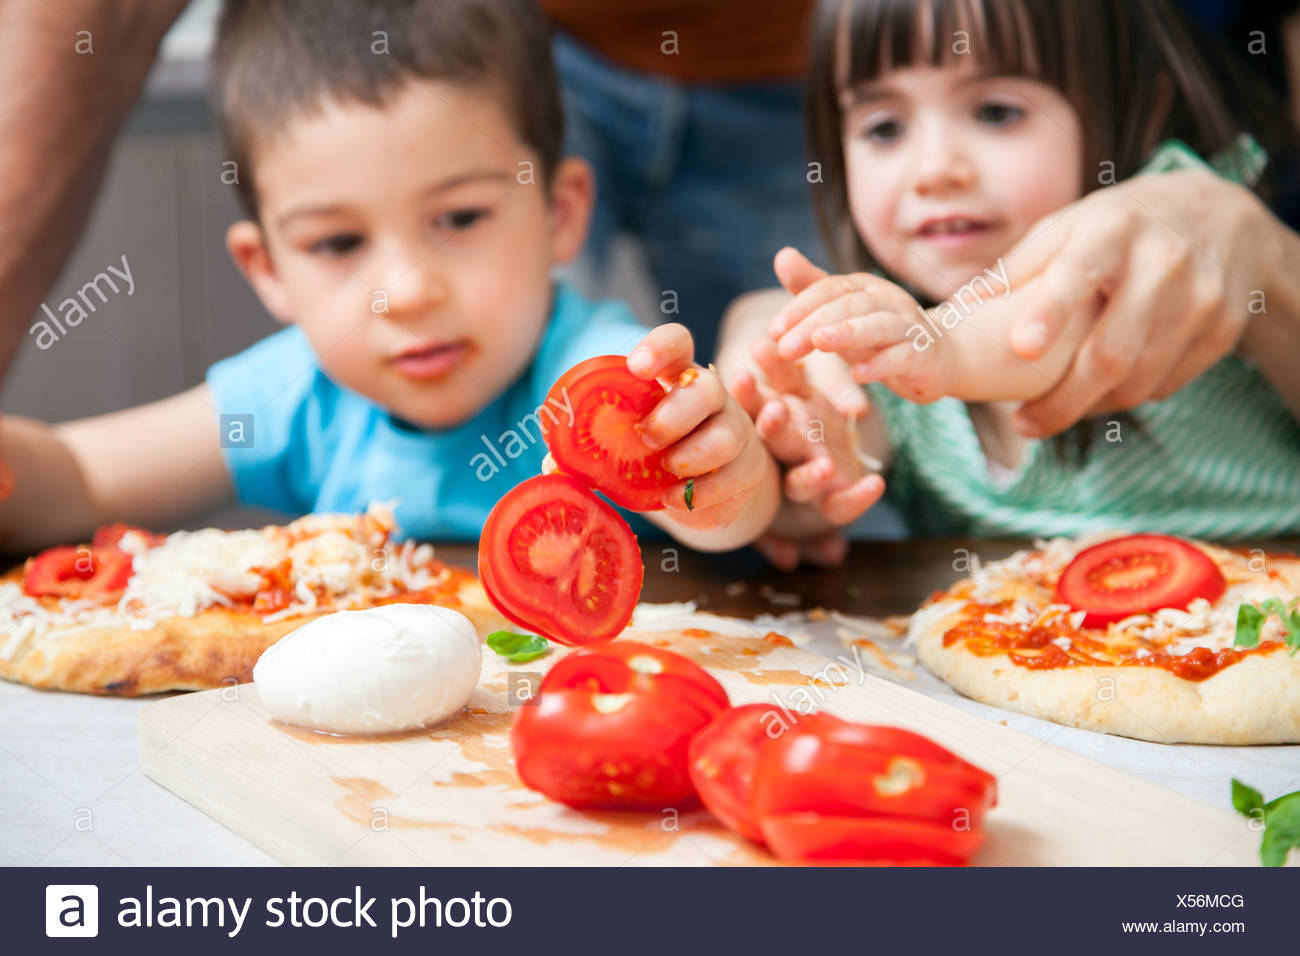 Brother and sister making homemade pizza - Stock Image